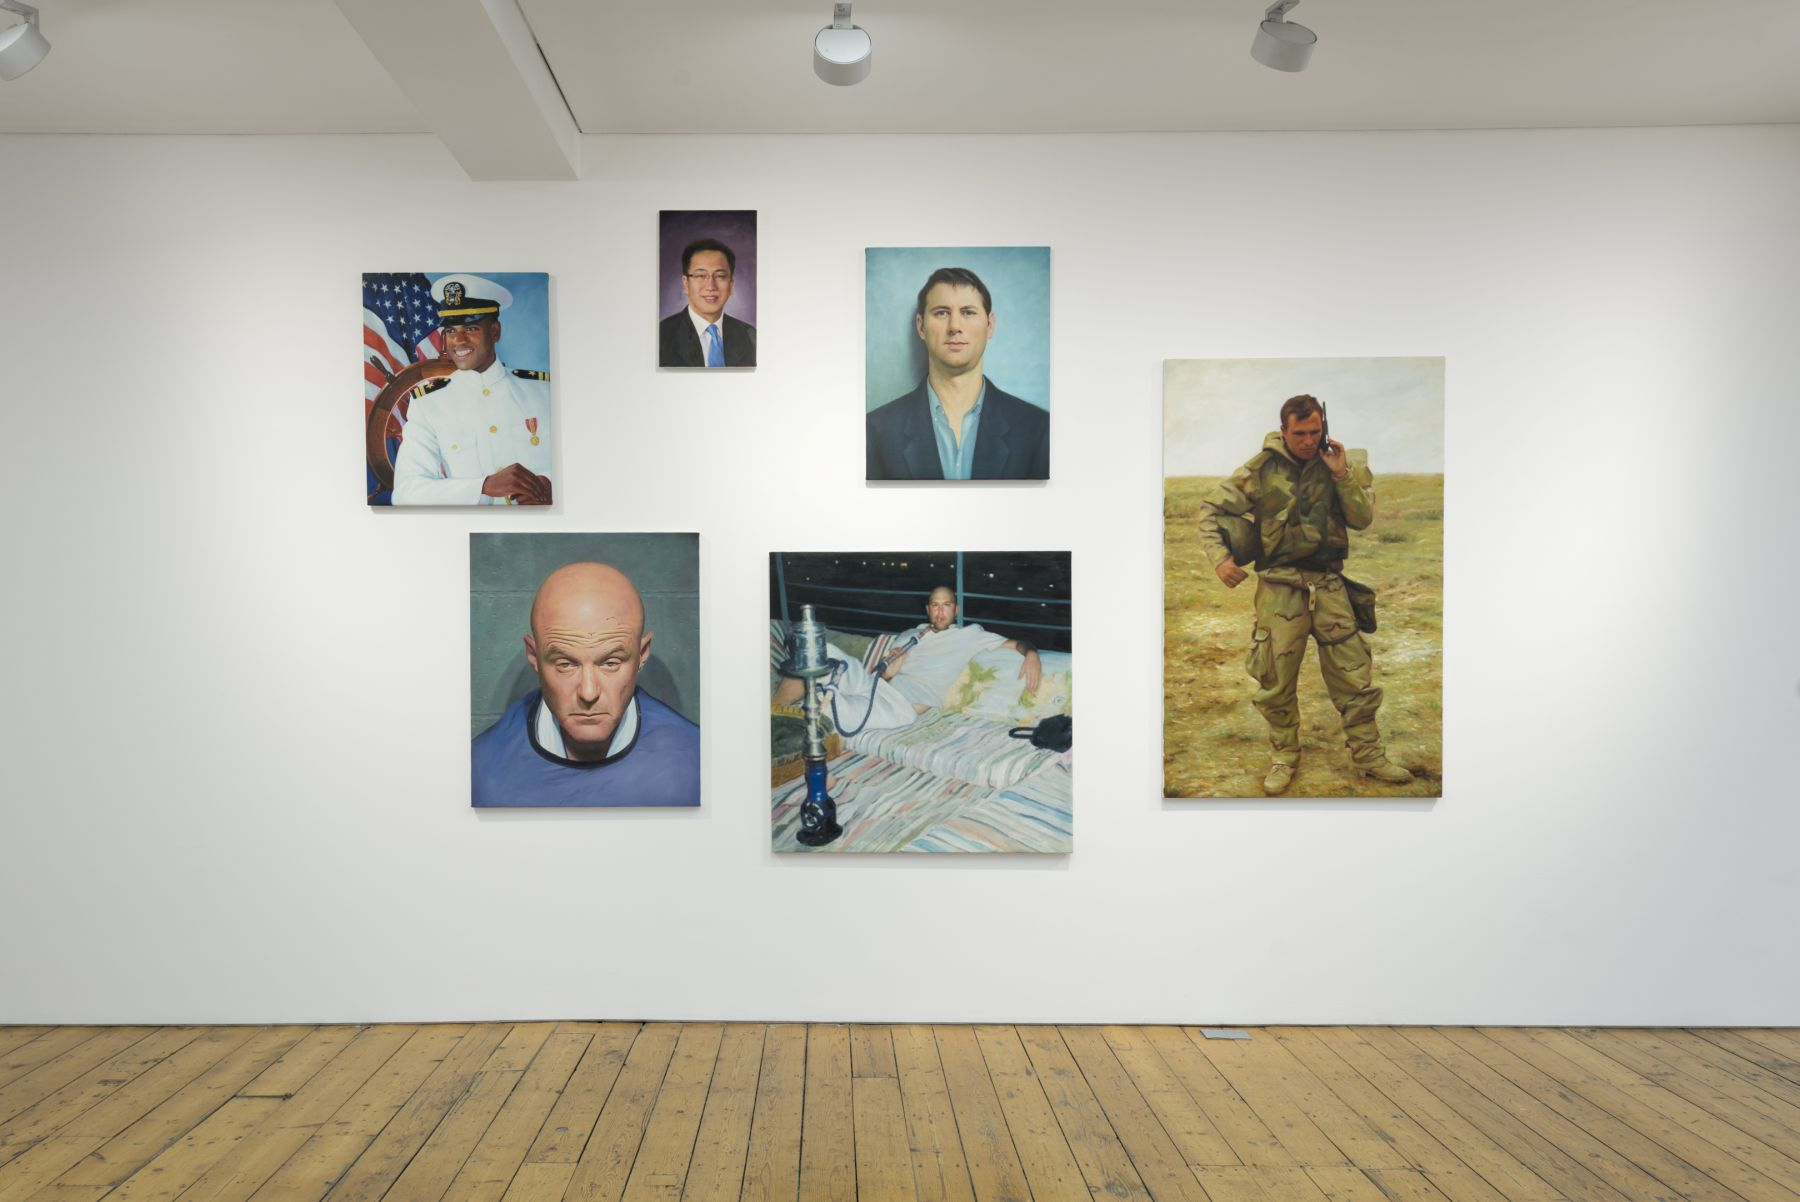 Installation view Sprovieri, london 2019